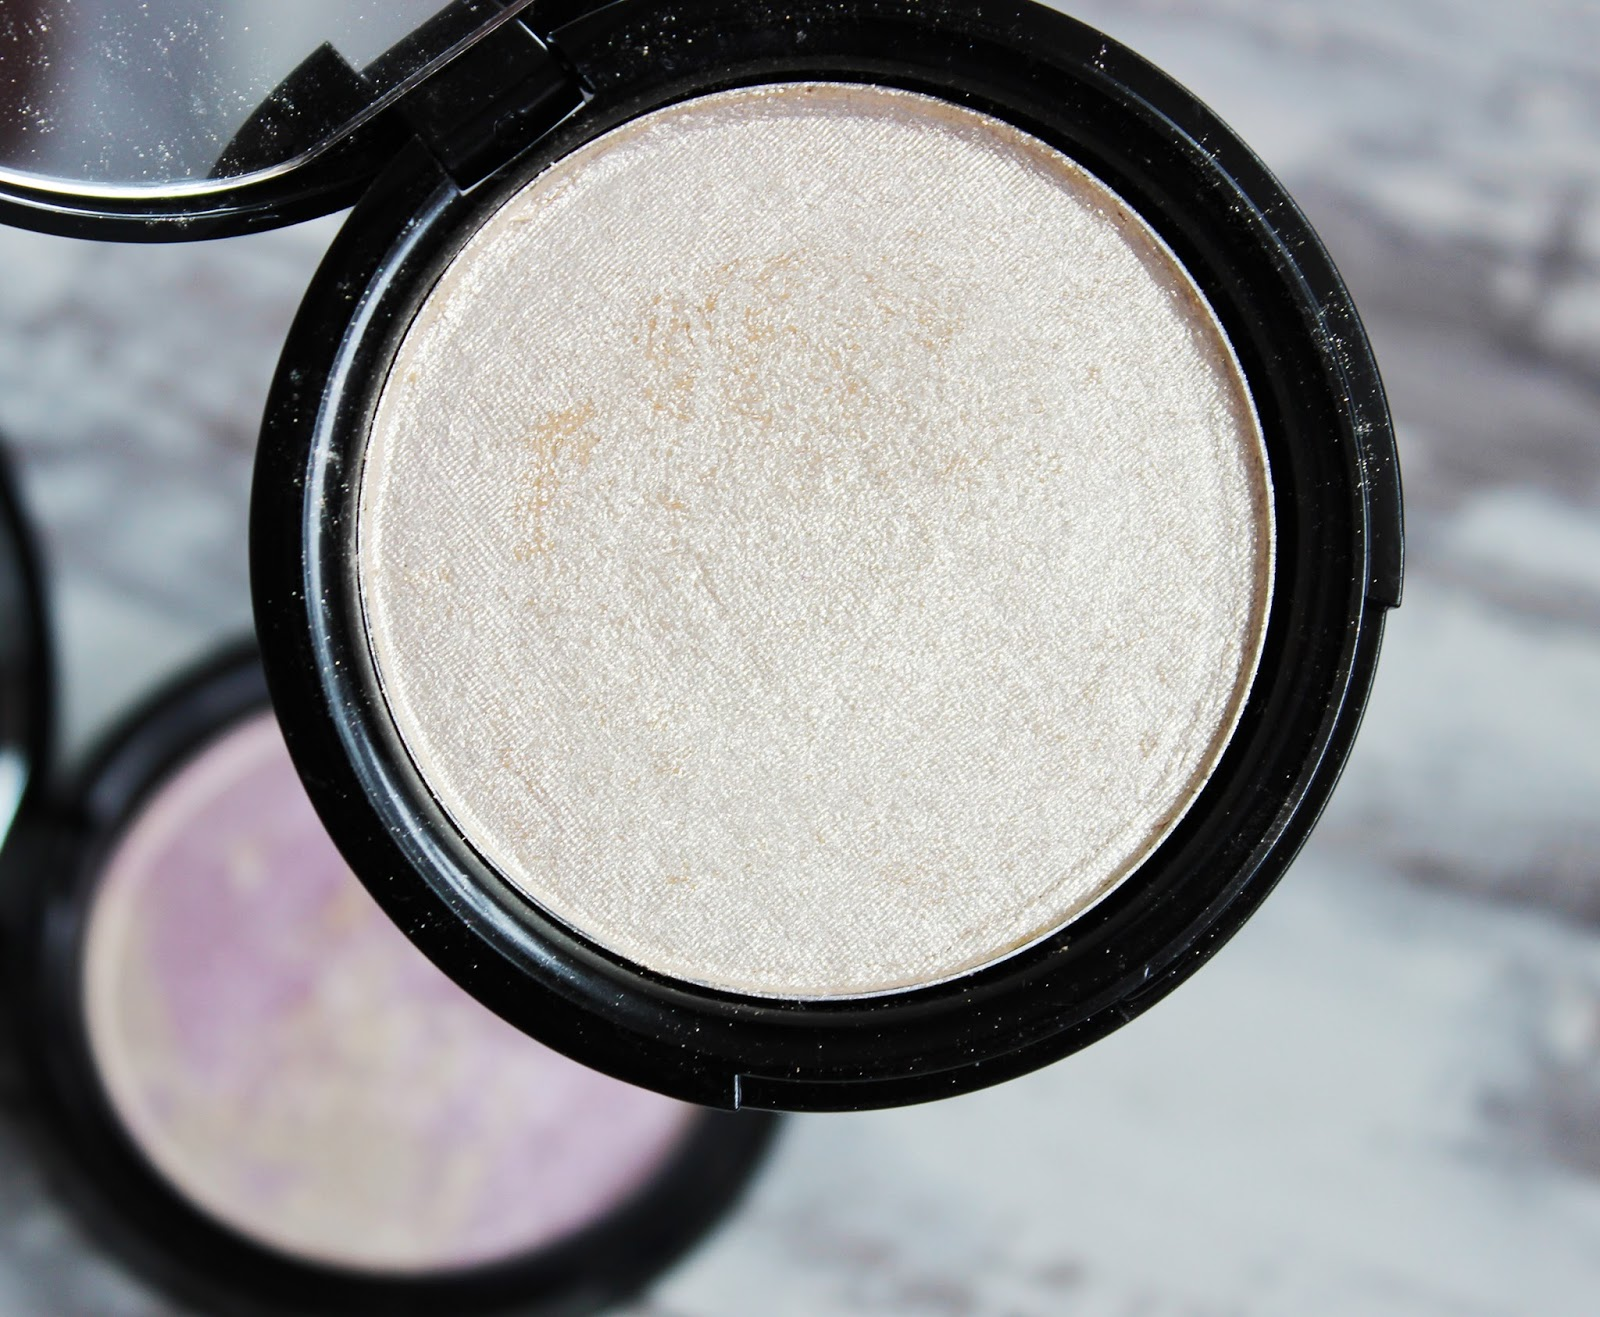 Phee's Makeup shop Glow highlighter review